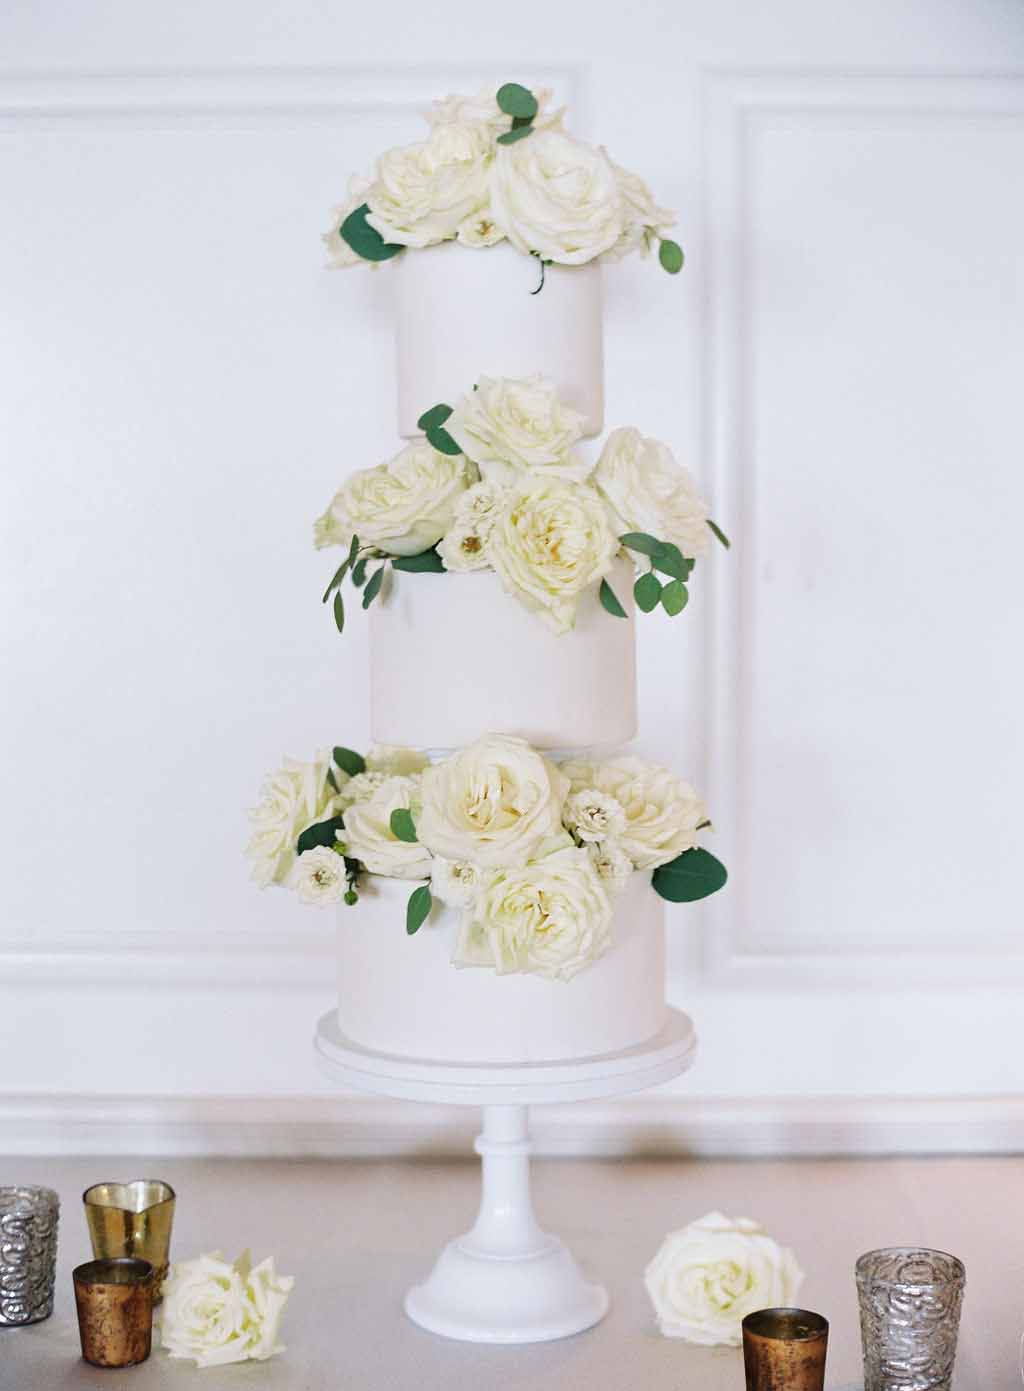 three tiered cake decorated with white roses and greenery